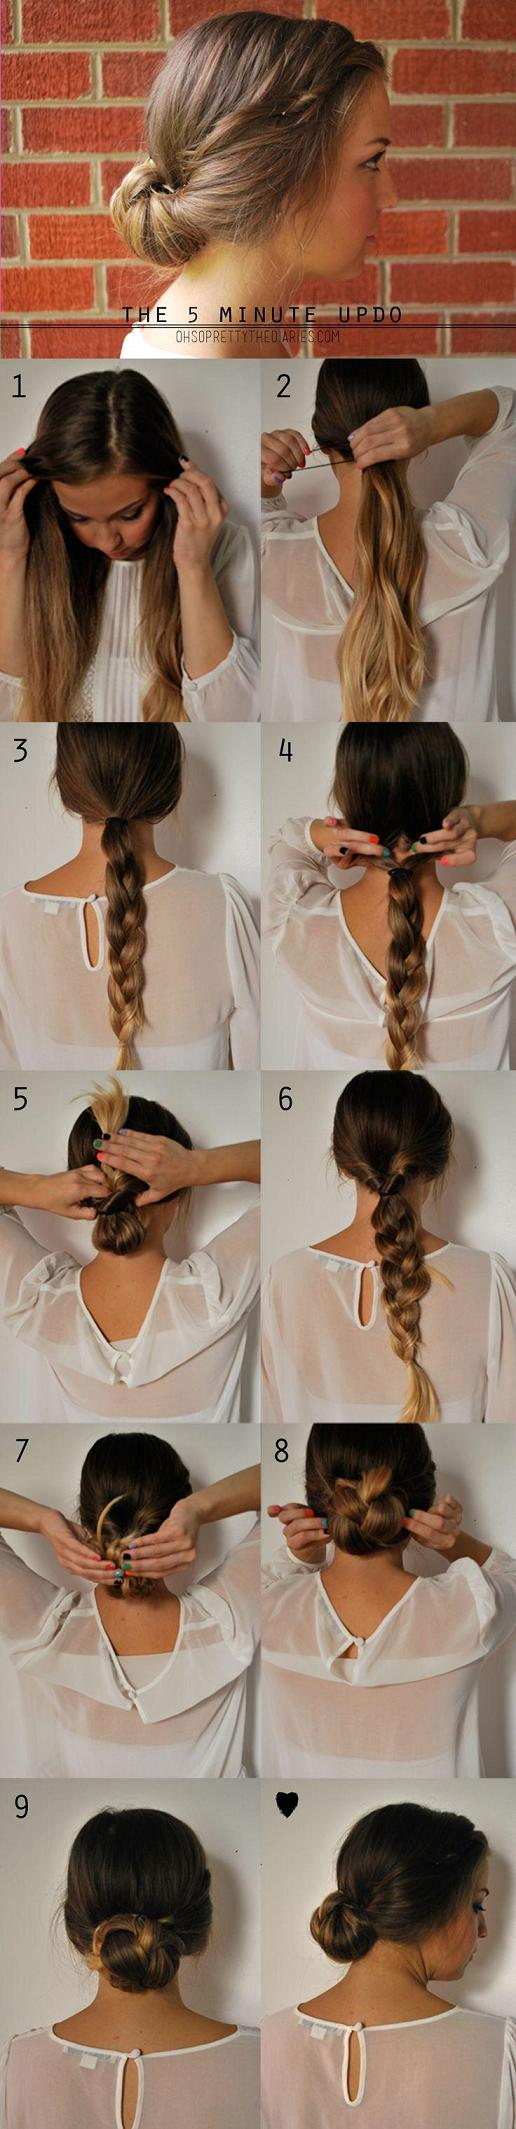 The-5-minute-updo-braided-gibson-tuck